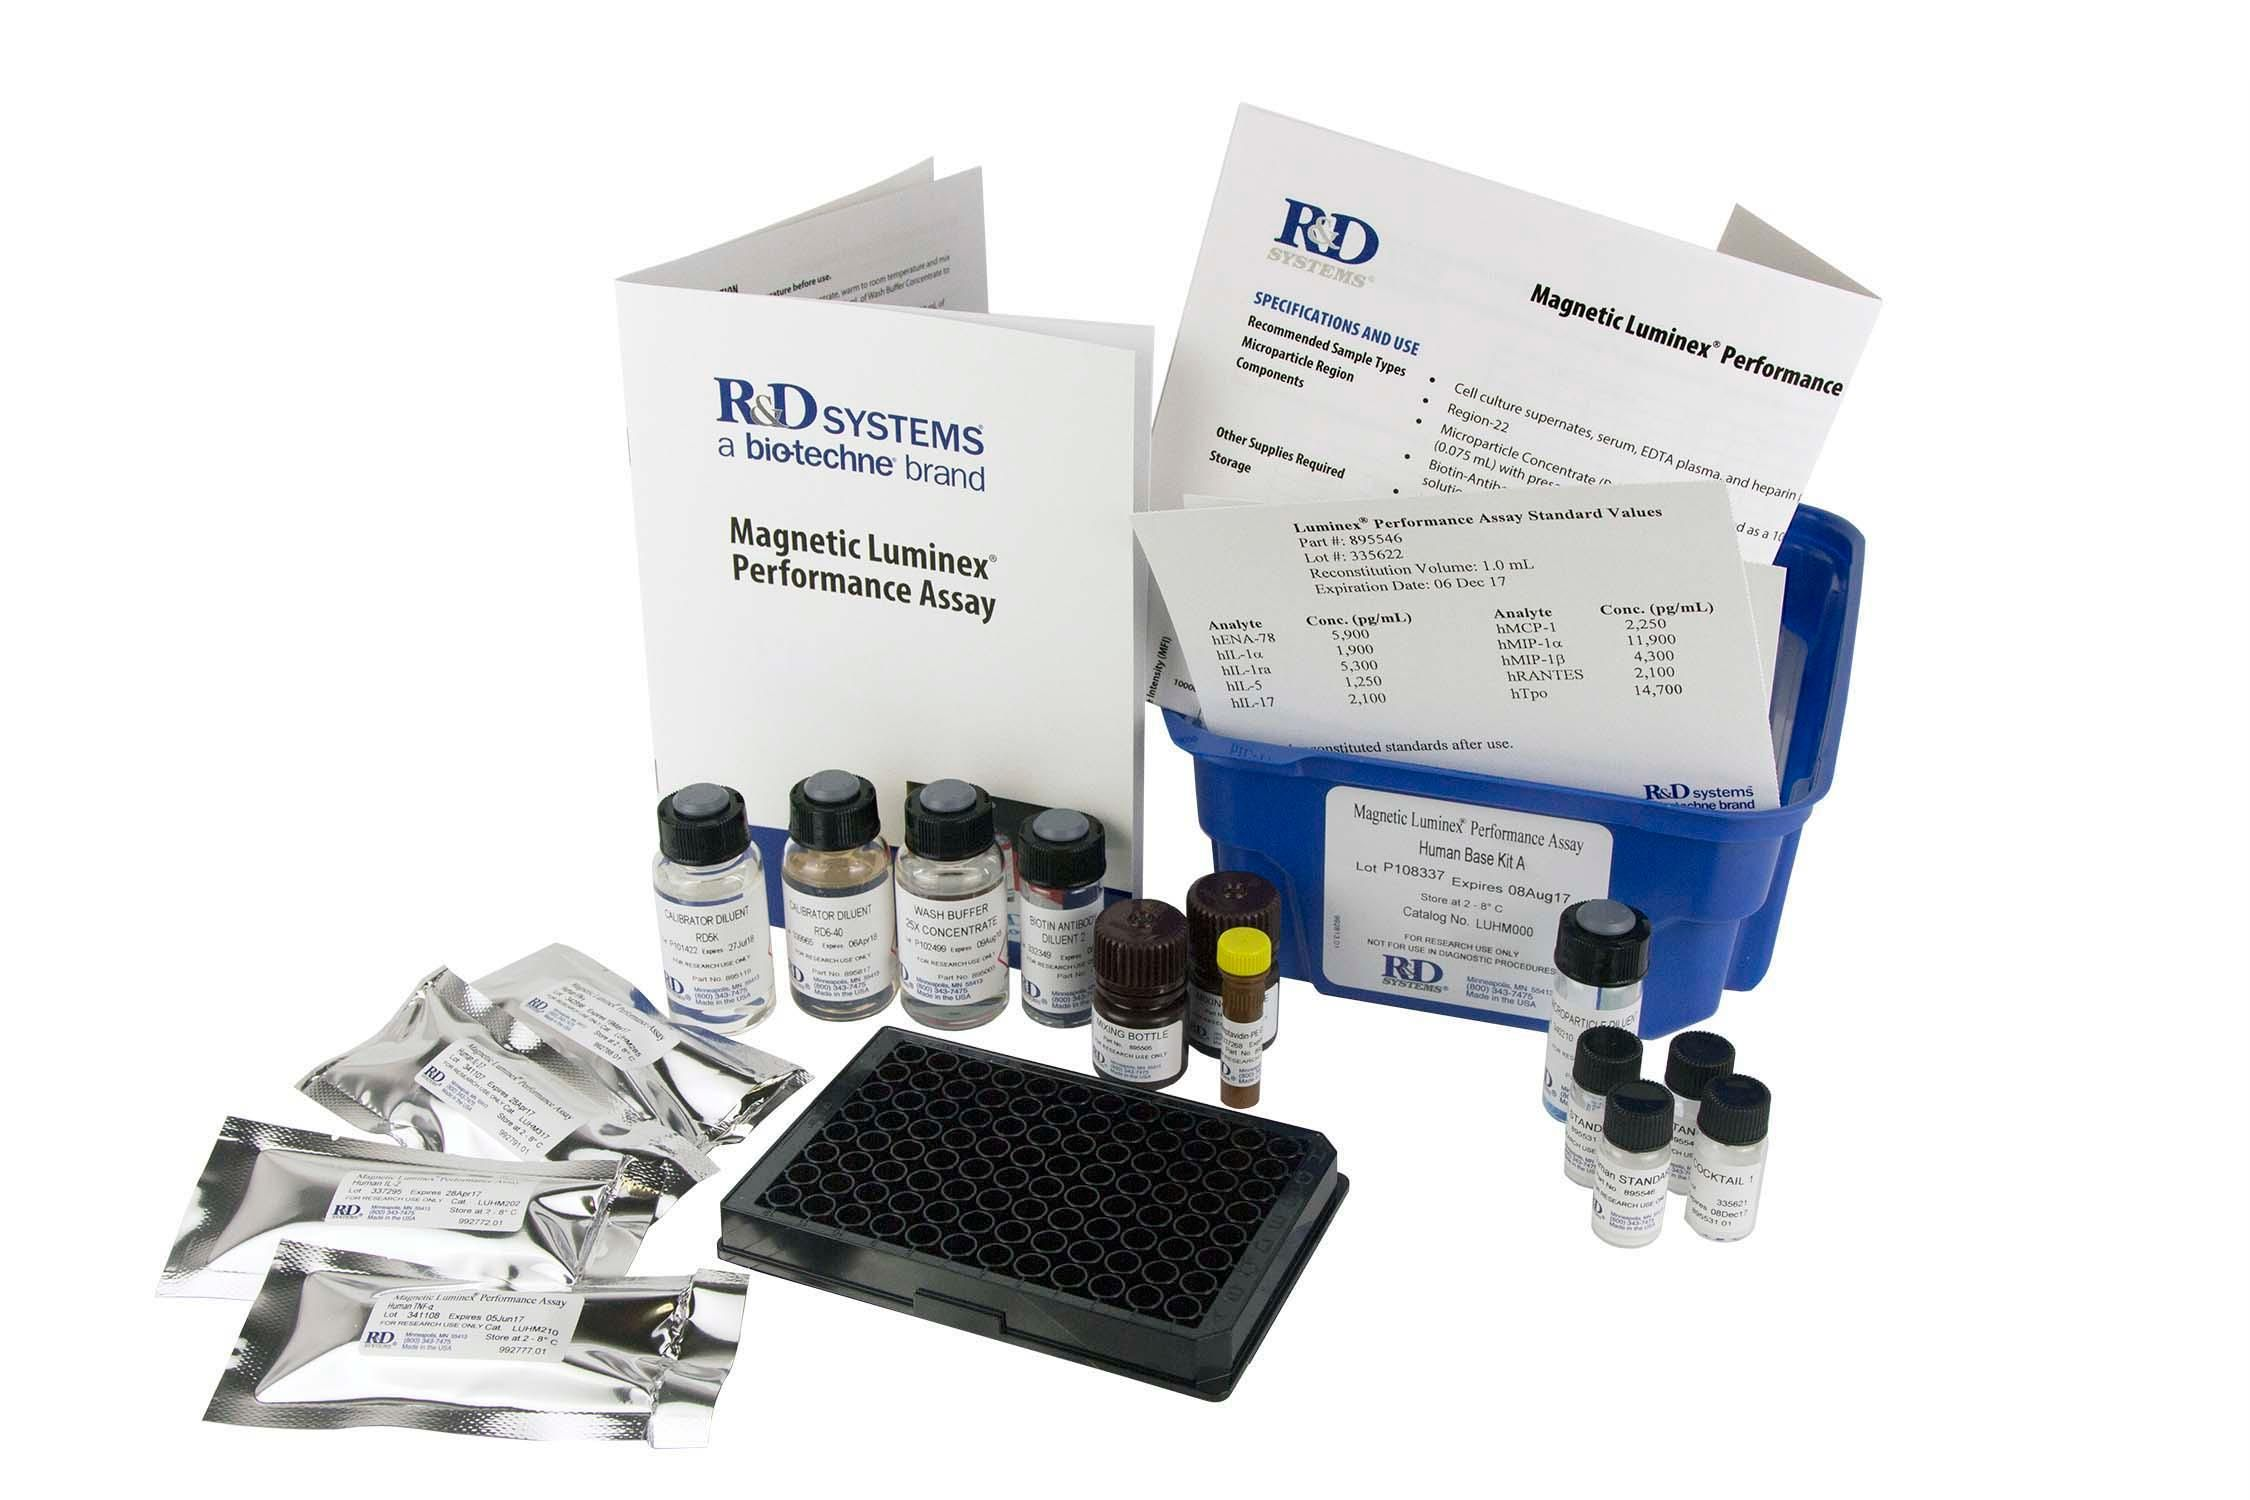 R&D Systems: Human IL-17 Magnetic Luminex Performance Assay